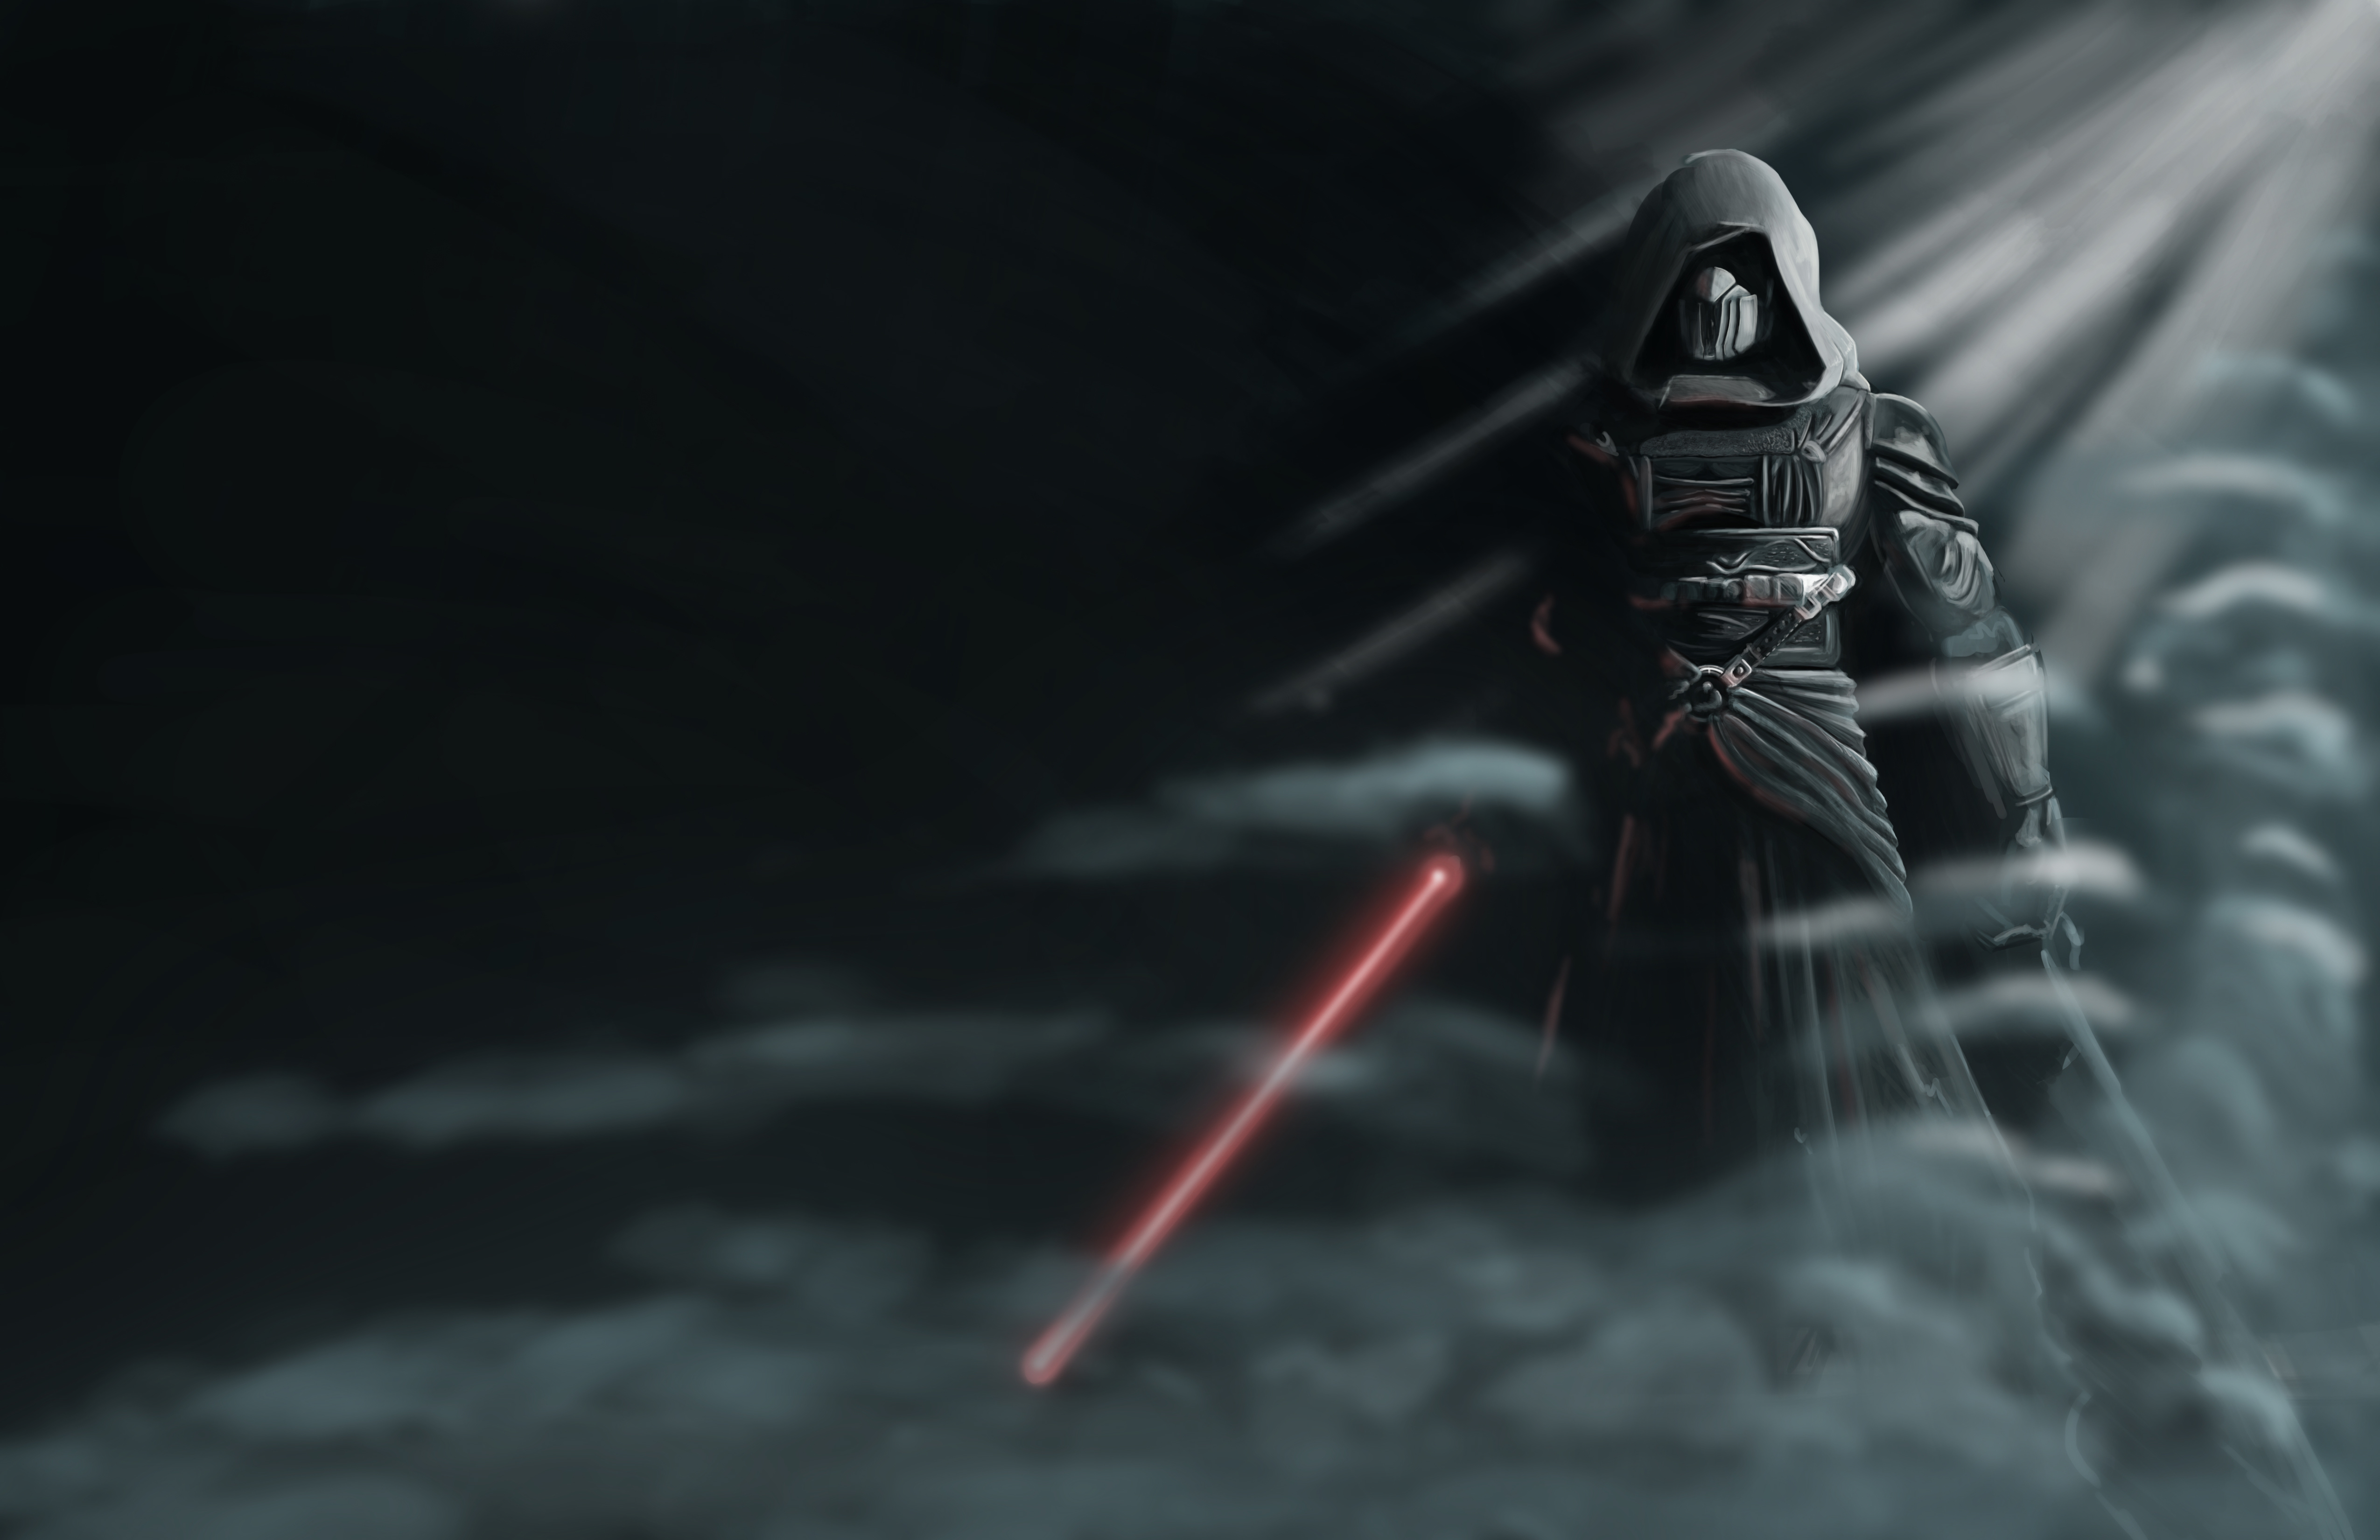 Fondos de pantalla Darth Revan Star Wars con Sable de Luz